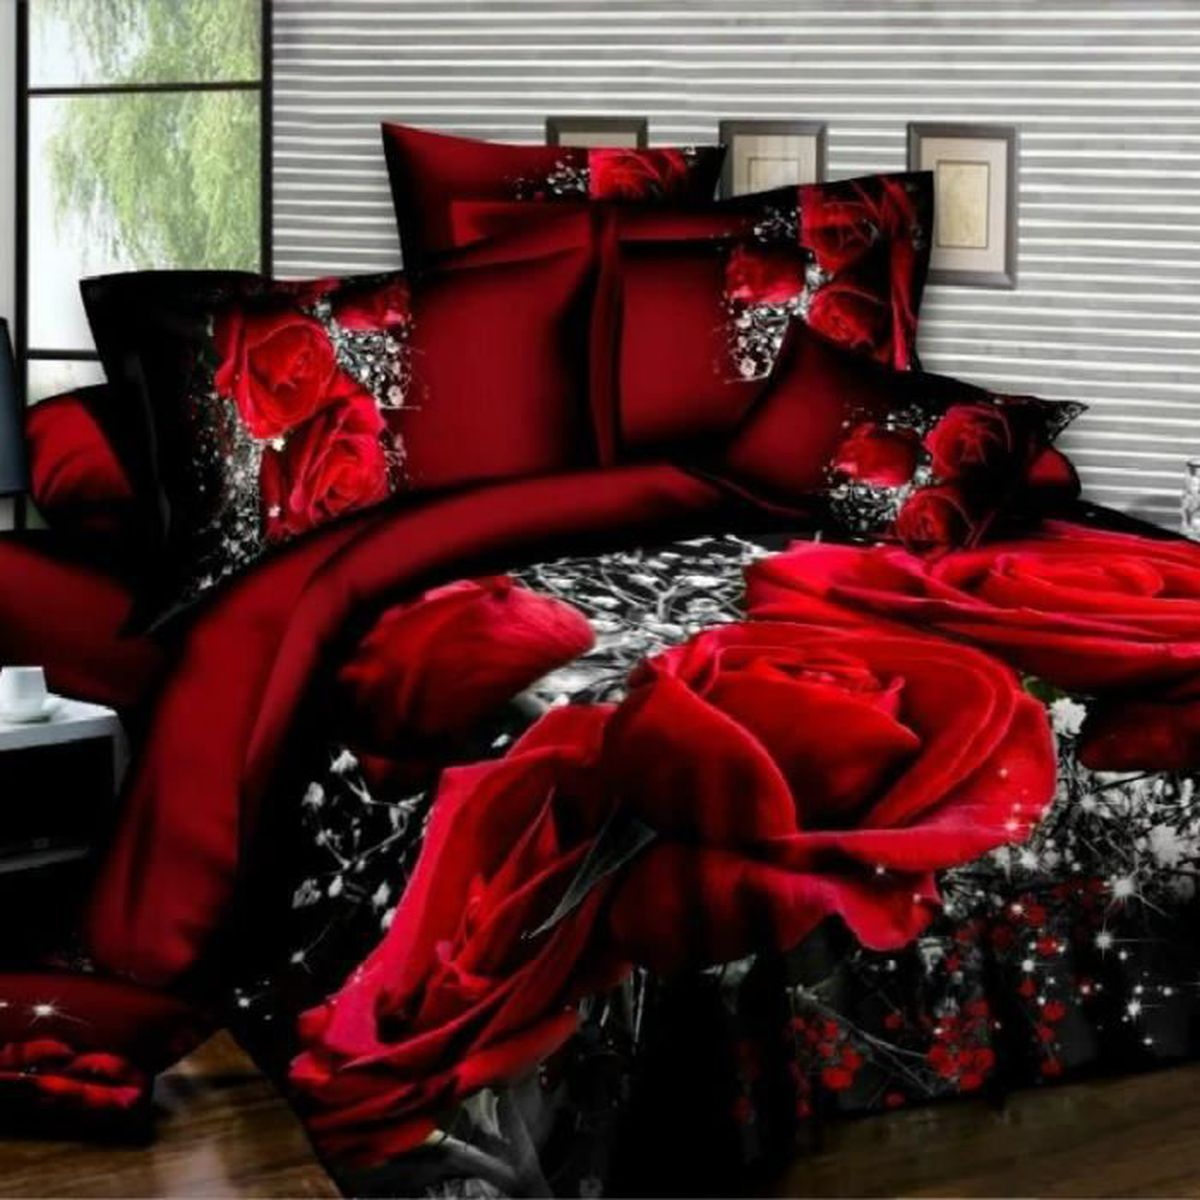 parure de lit 3d 200x200 achat vente parure de lit 3d. Black Bedroom Furniture Sets. Home Design Ideas